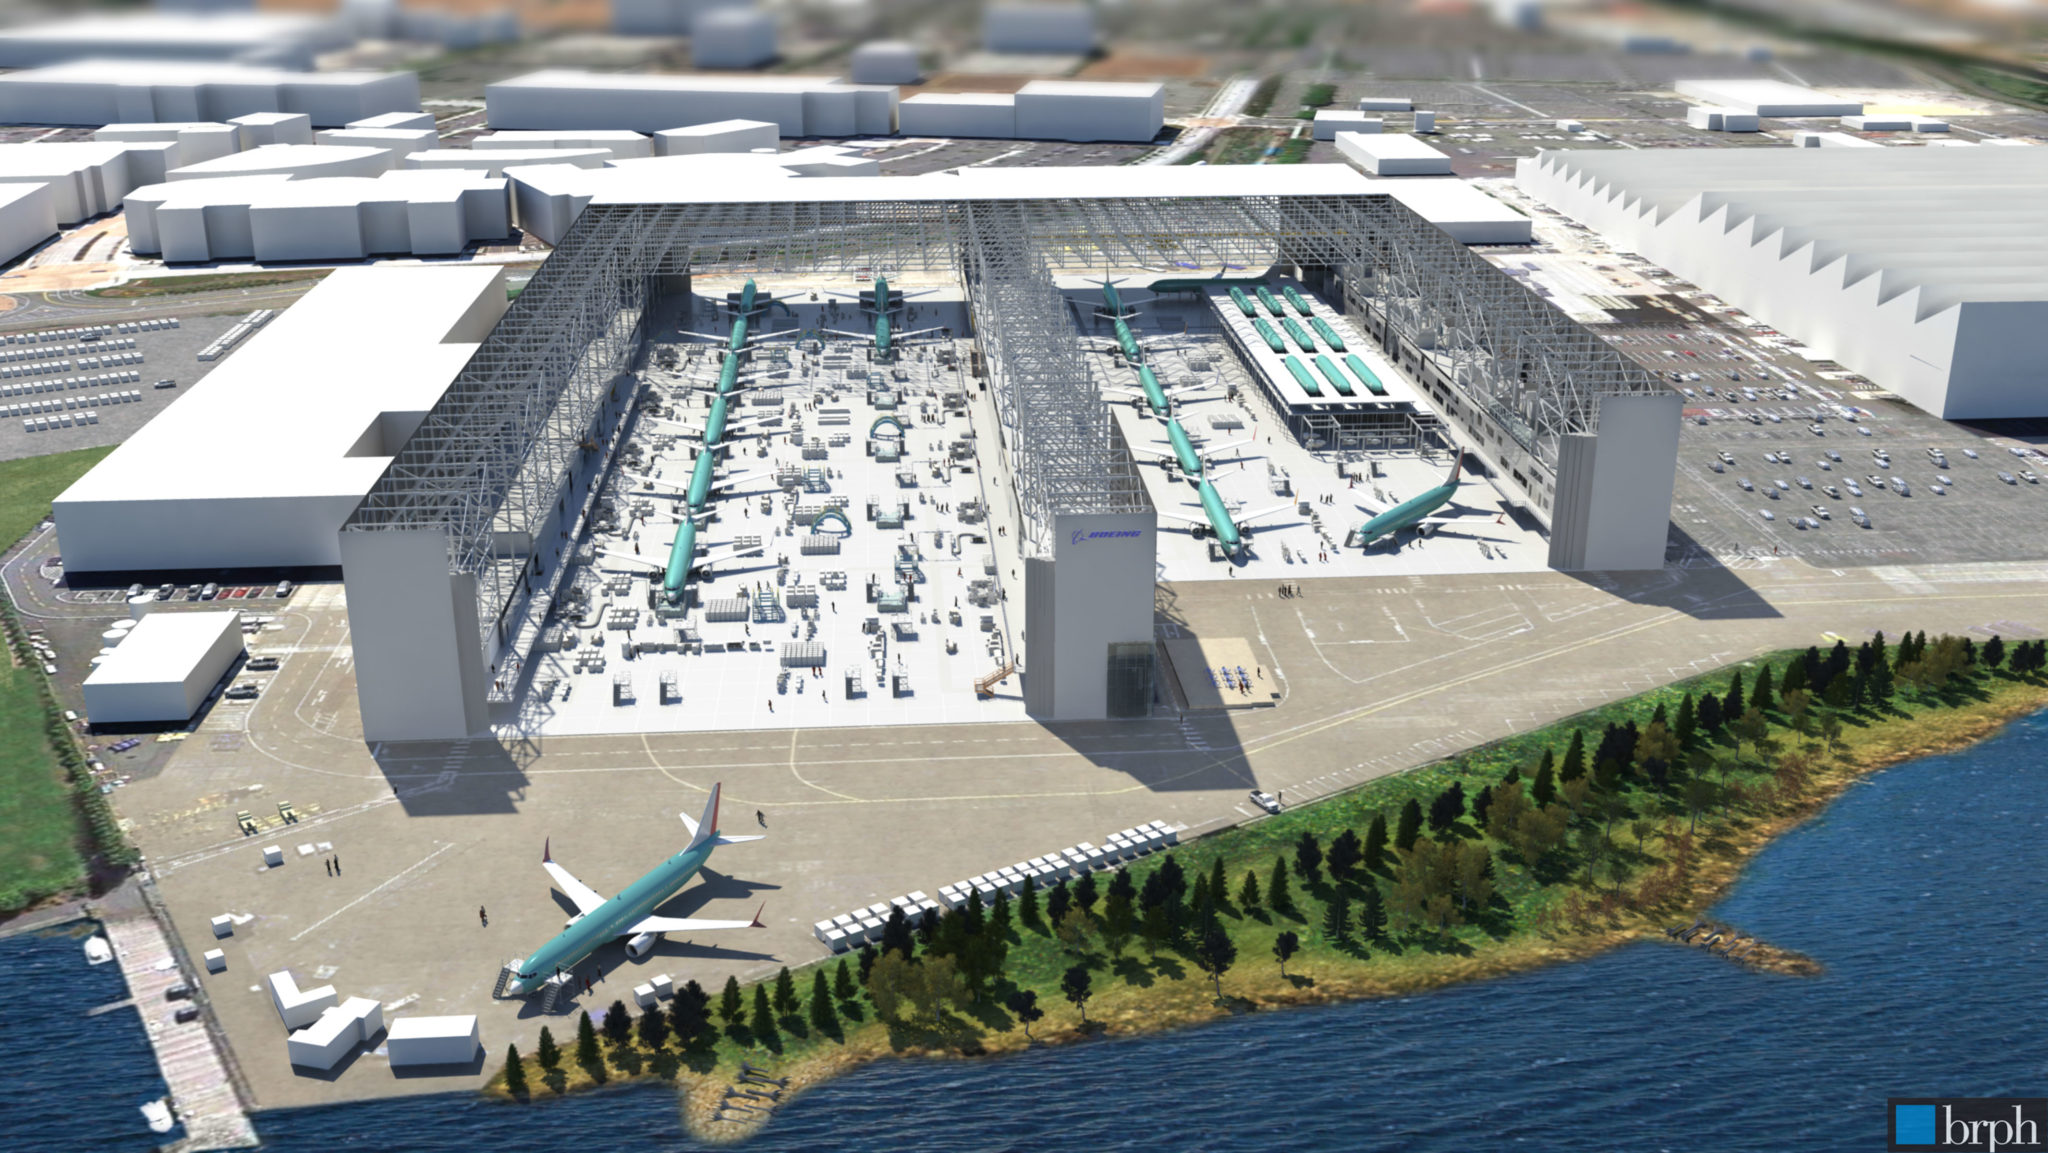 In this artist rendering by Boeing, the new third assembly line, for the 737 MAX, is seen in the center between the East and West lines.